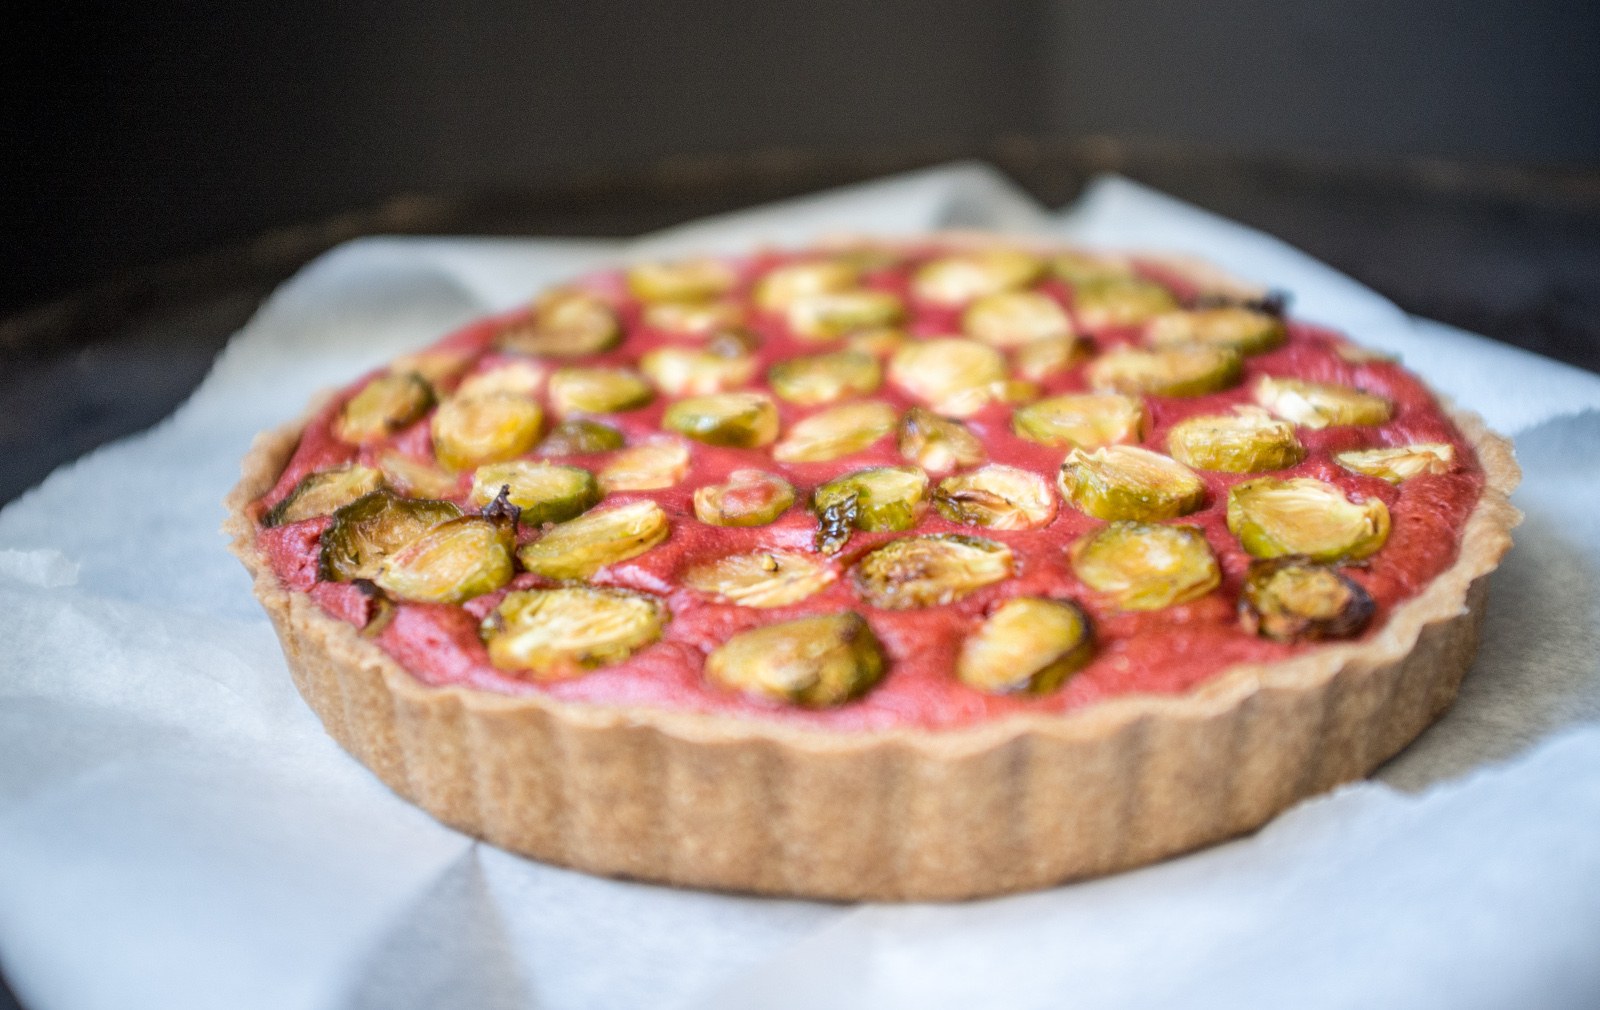 roasted brussels srpouts and beet tart